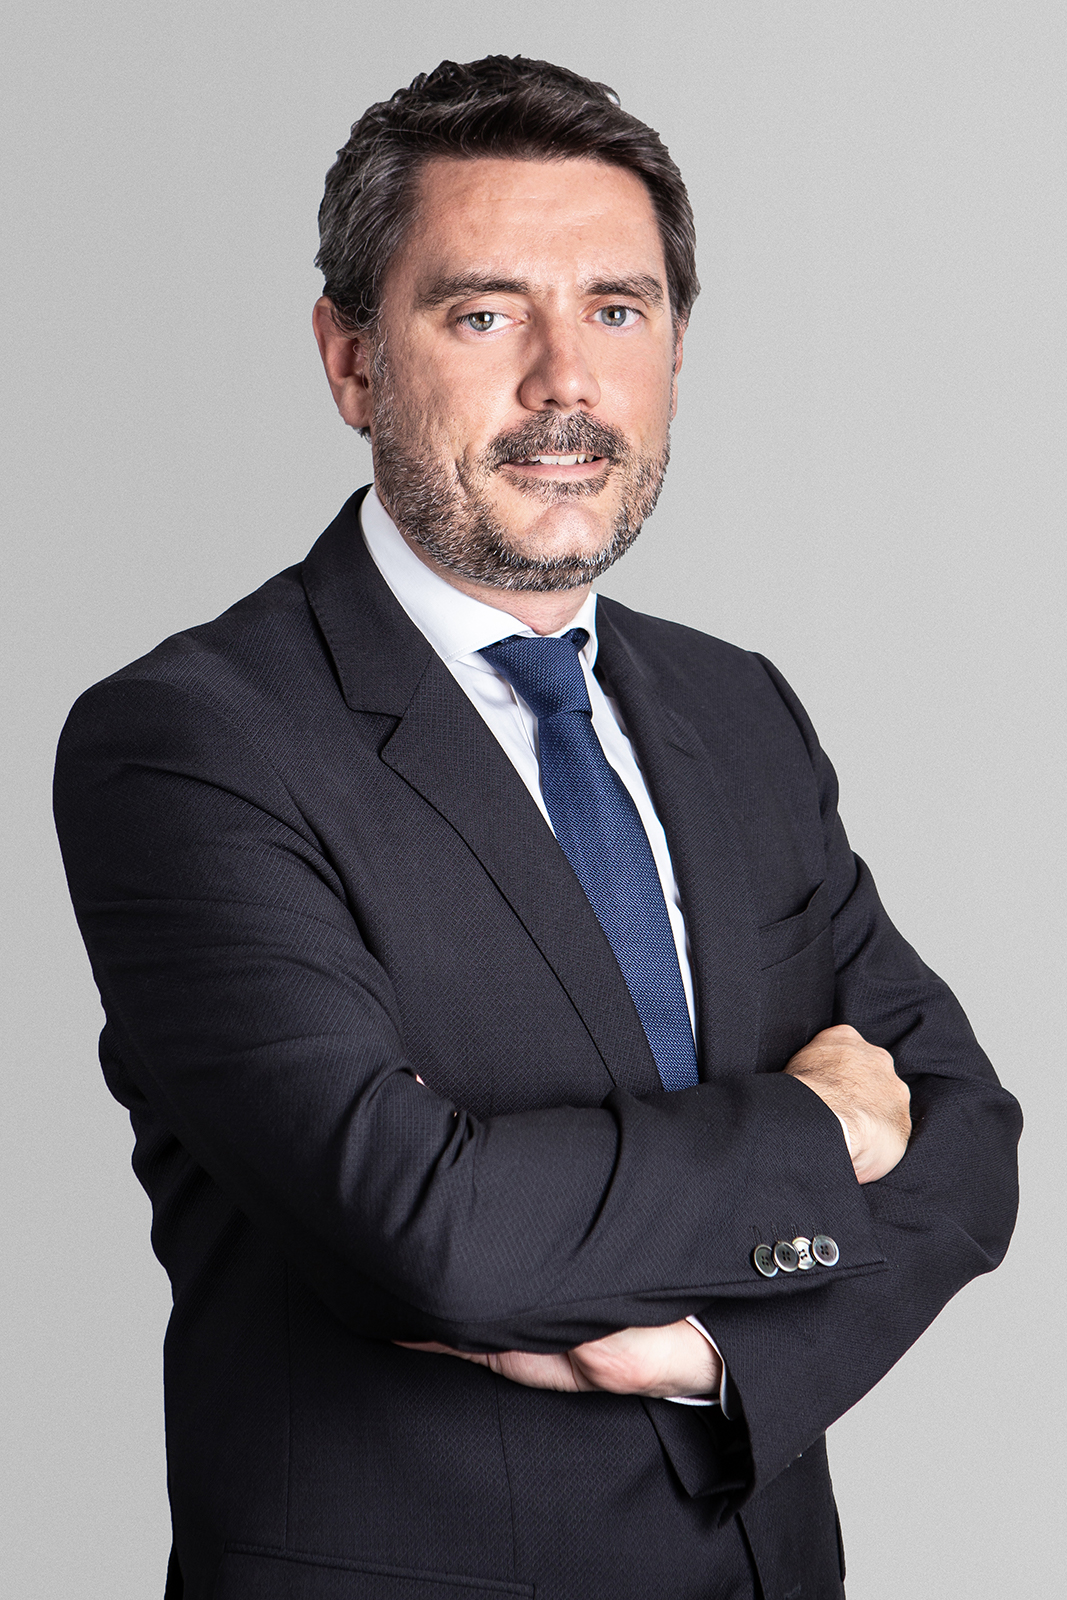 Cristian Oller, Country manager Spain